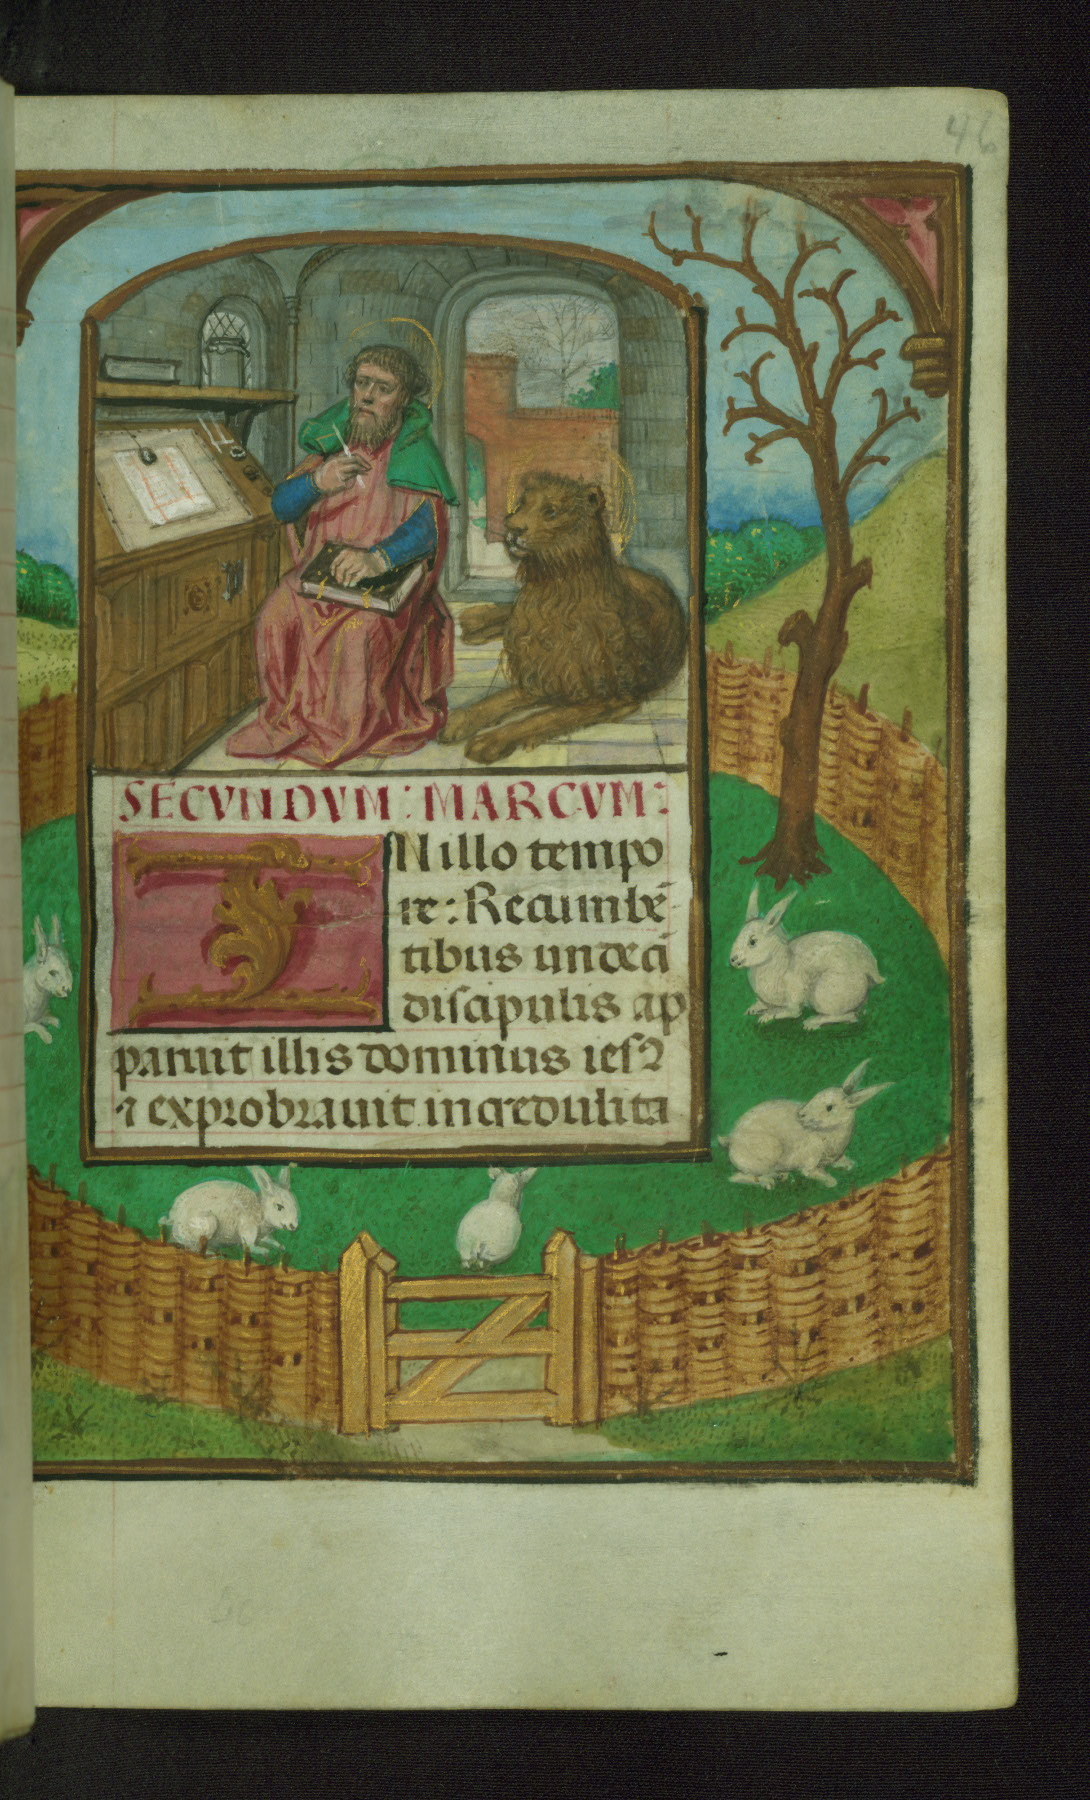 Book of Hours 1500 ca Ms. W.427 Walters Art Museum Baltimore fol. 46r st Marc